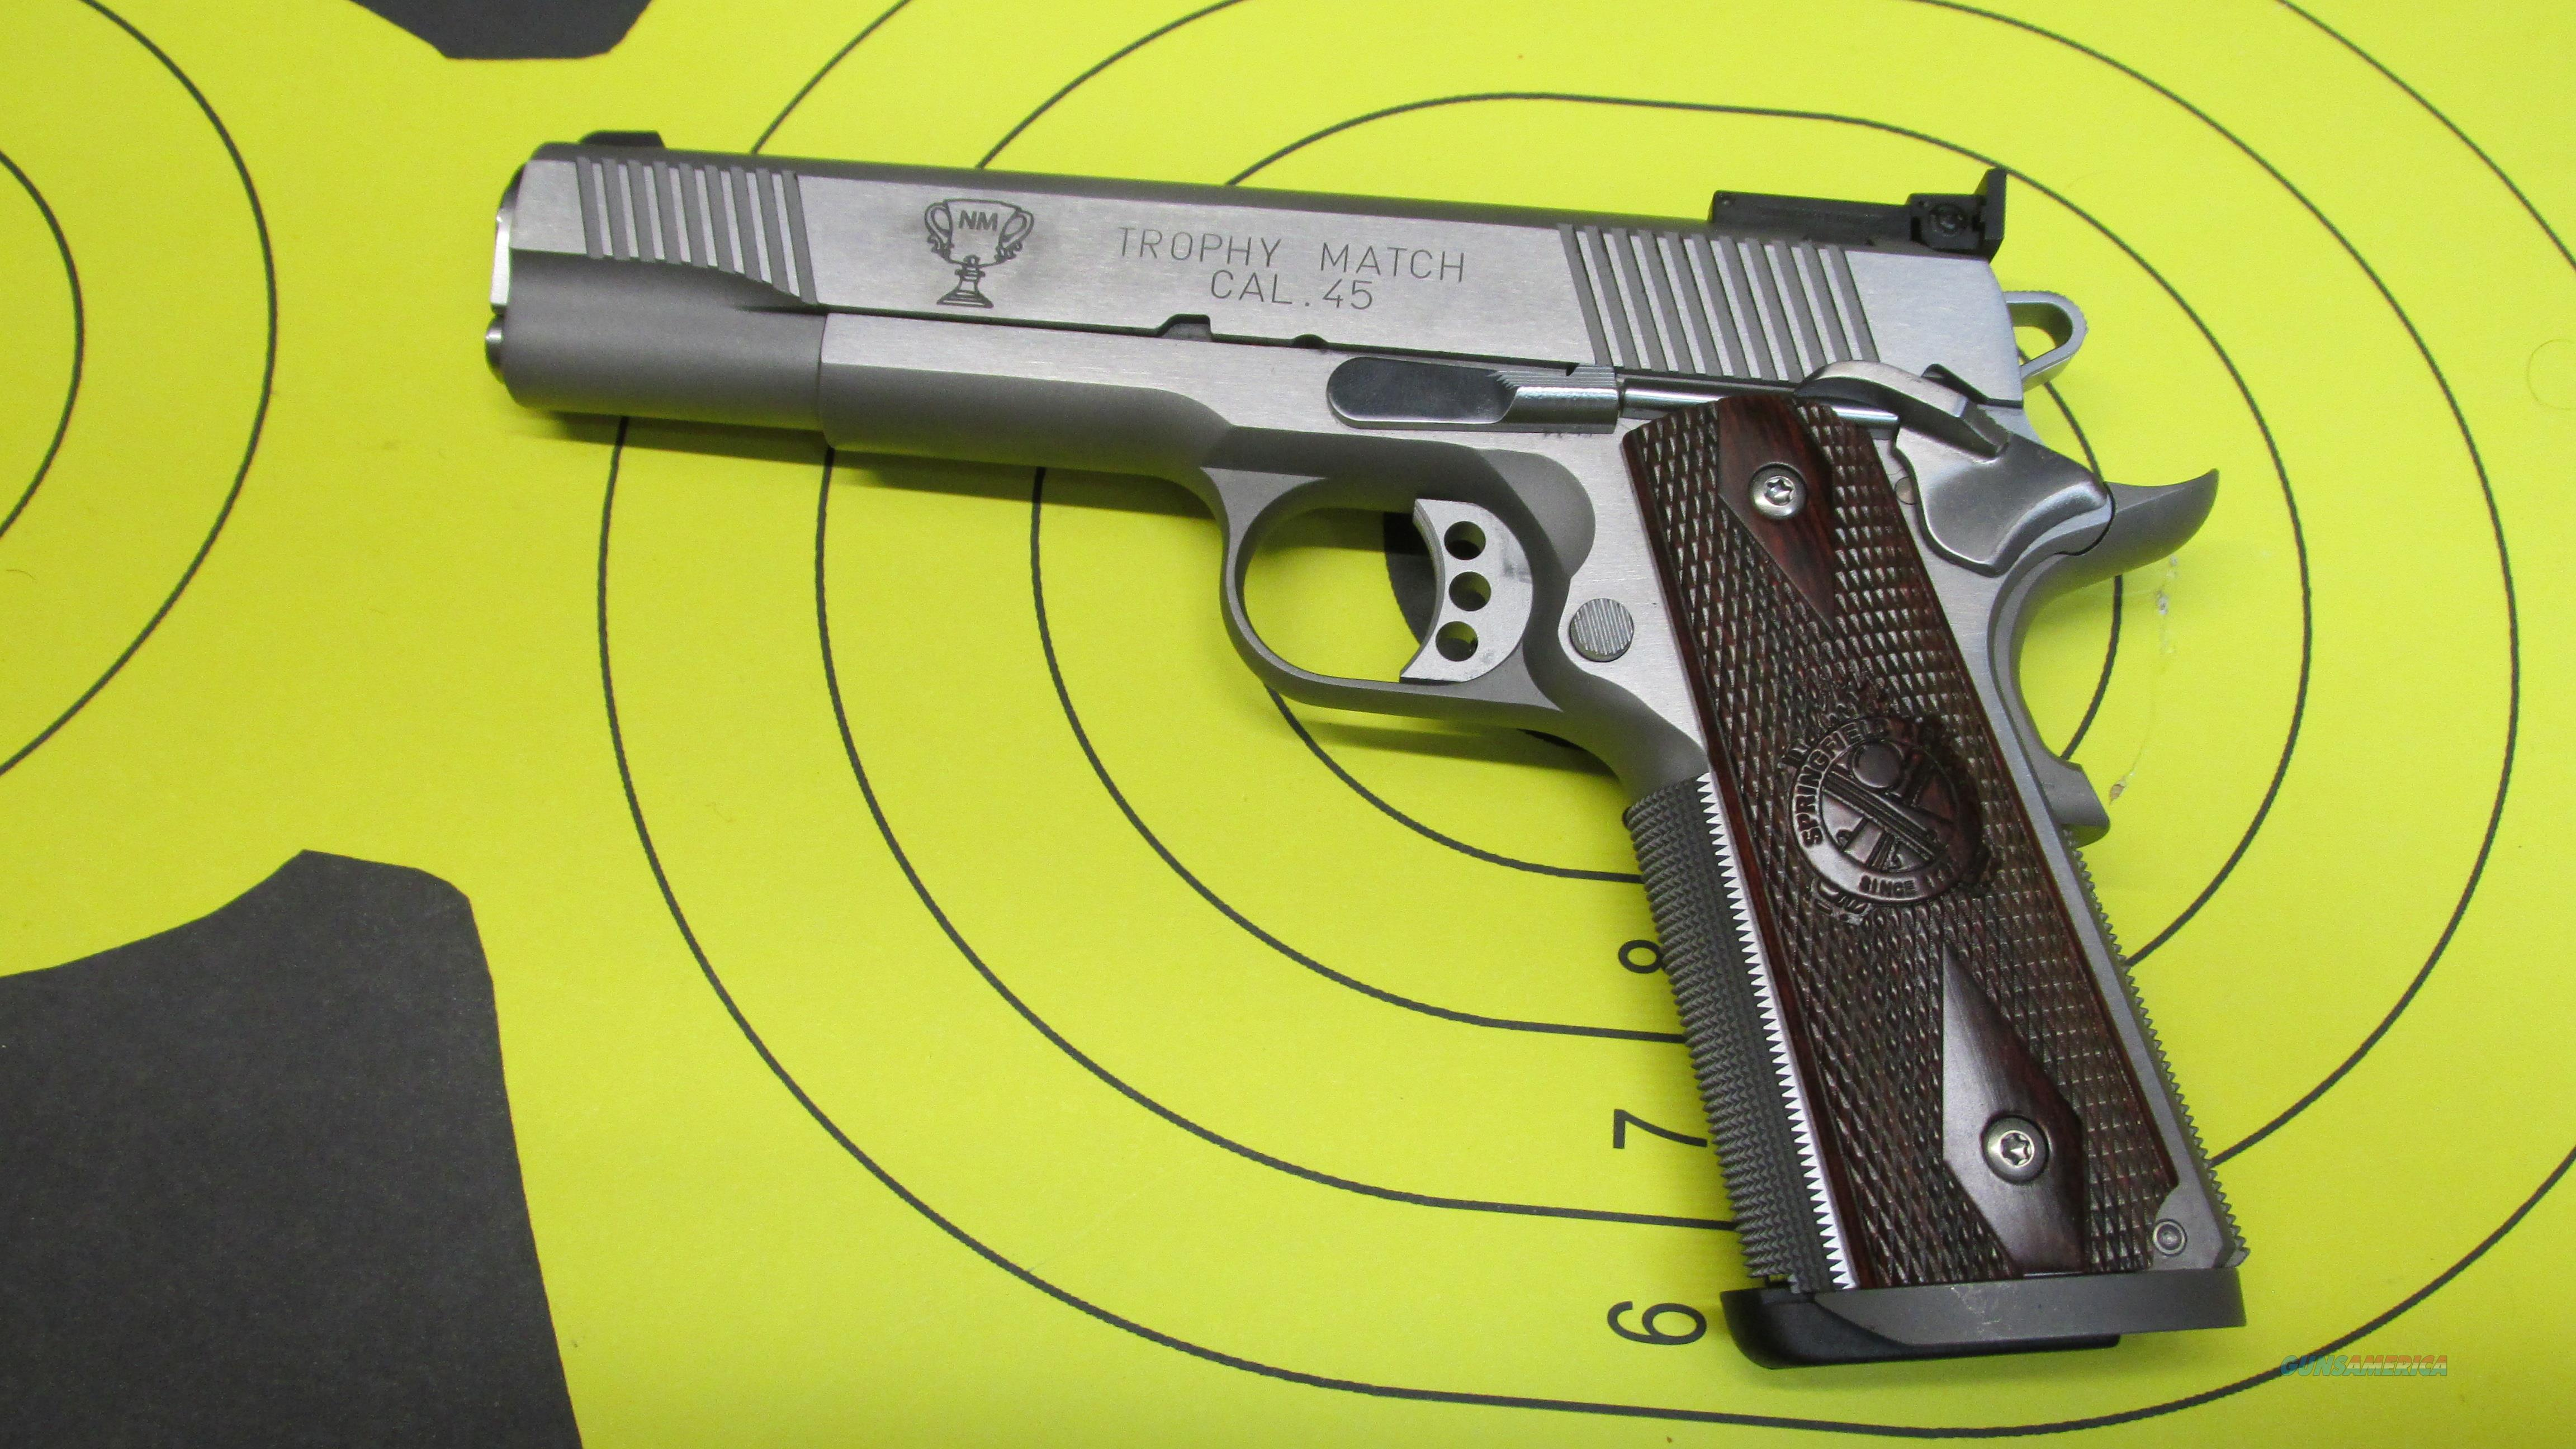 "SPRINGFIELD ARMORY 1911 TROPHY MATCH STAINLESS .45ACP PISTOL 2 7 ROUND MAGAZINES WITH 5"" BARREL  Guns > Pistols > Springfield Armory Pistols > 1911 Type"